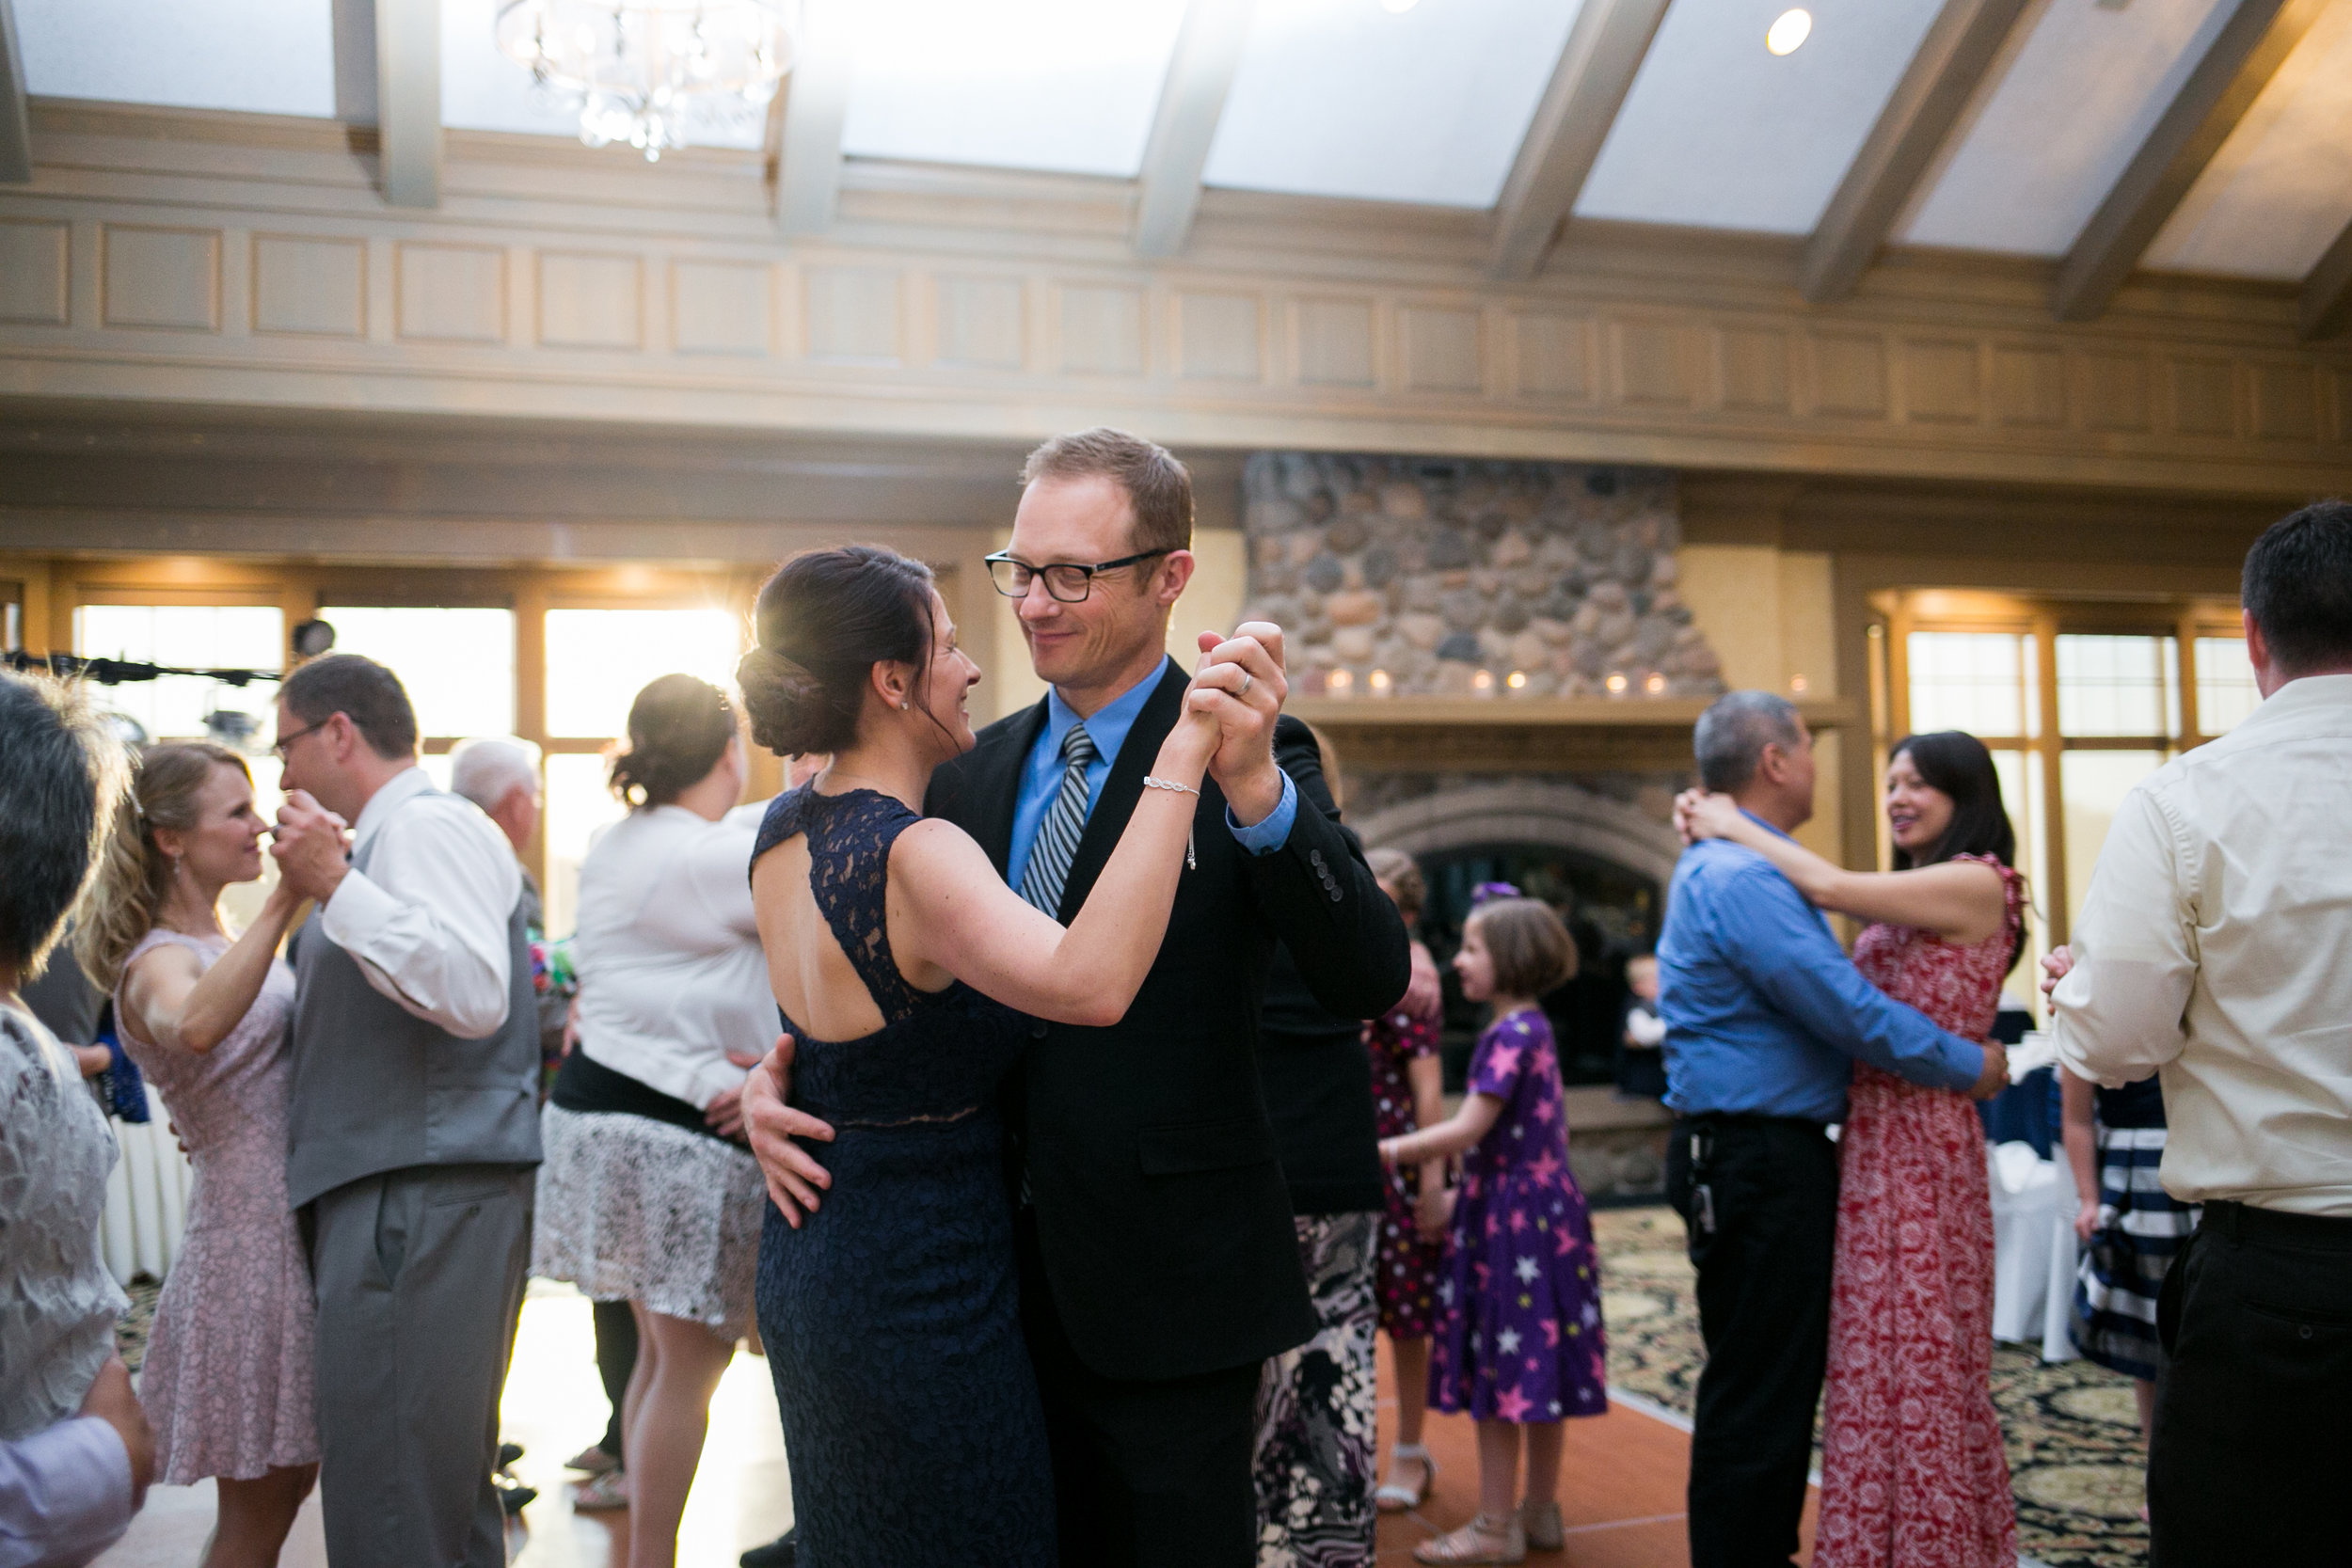 Rush Creek Golf Club Maple Grove MN Wedding (41 of 46).jpg